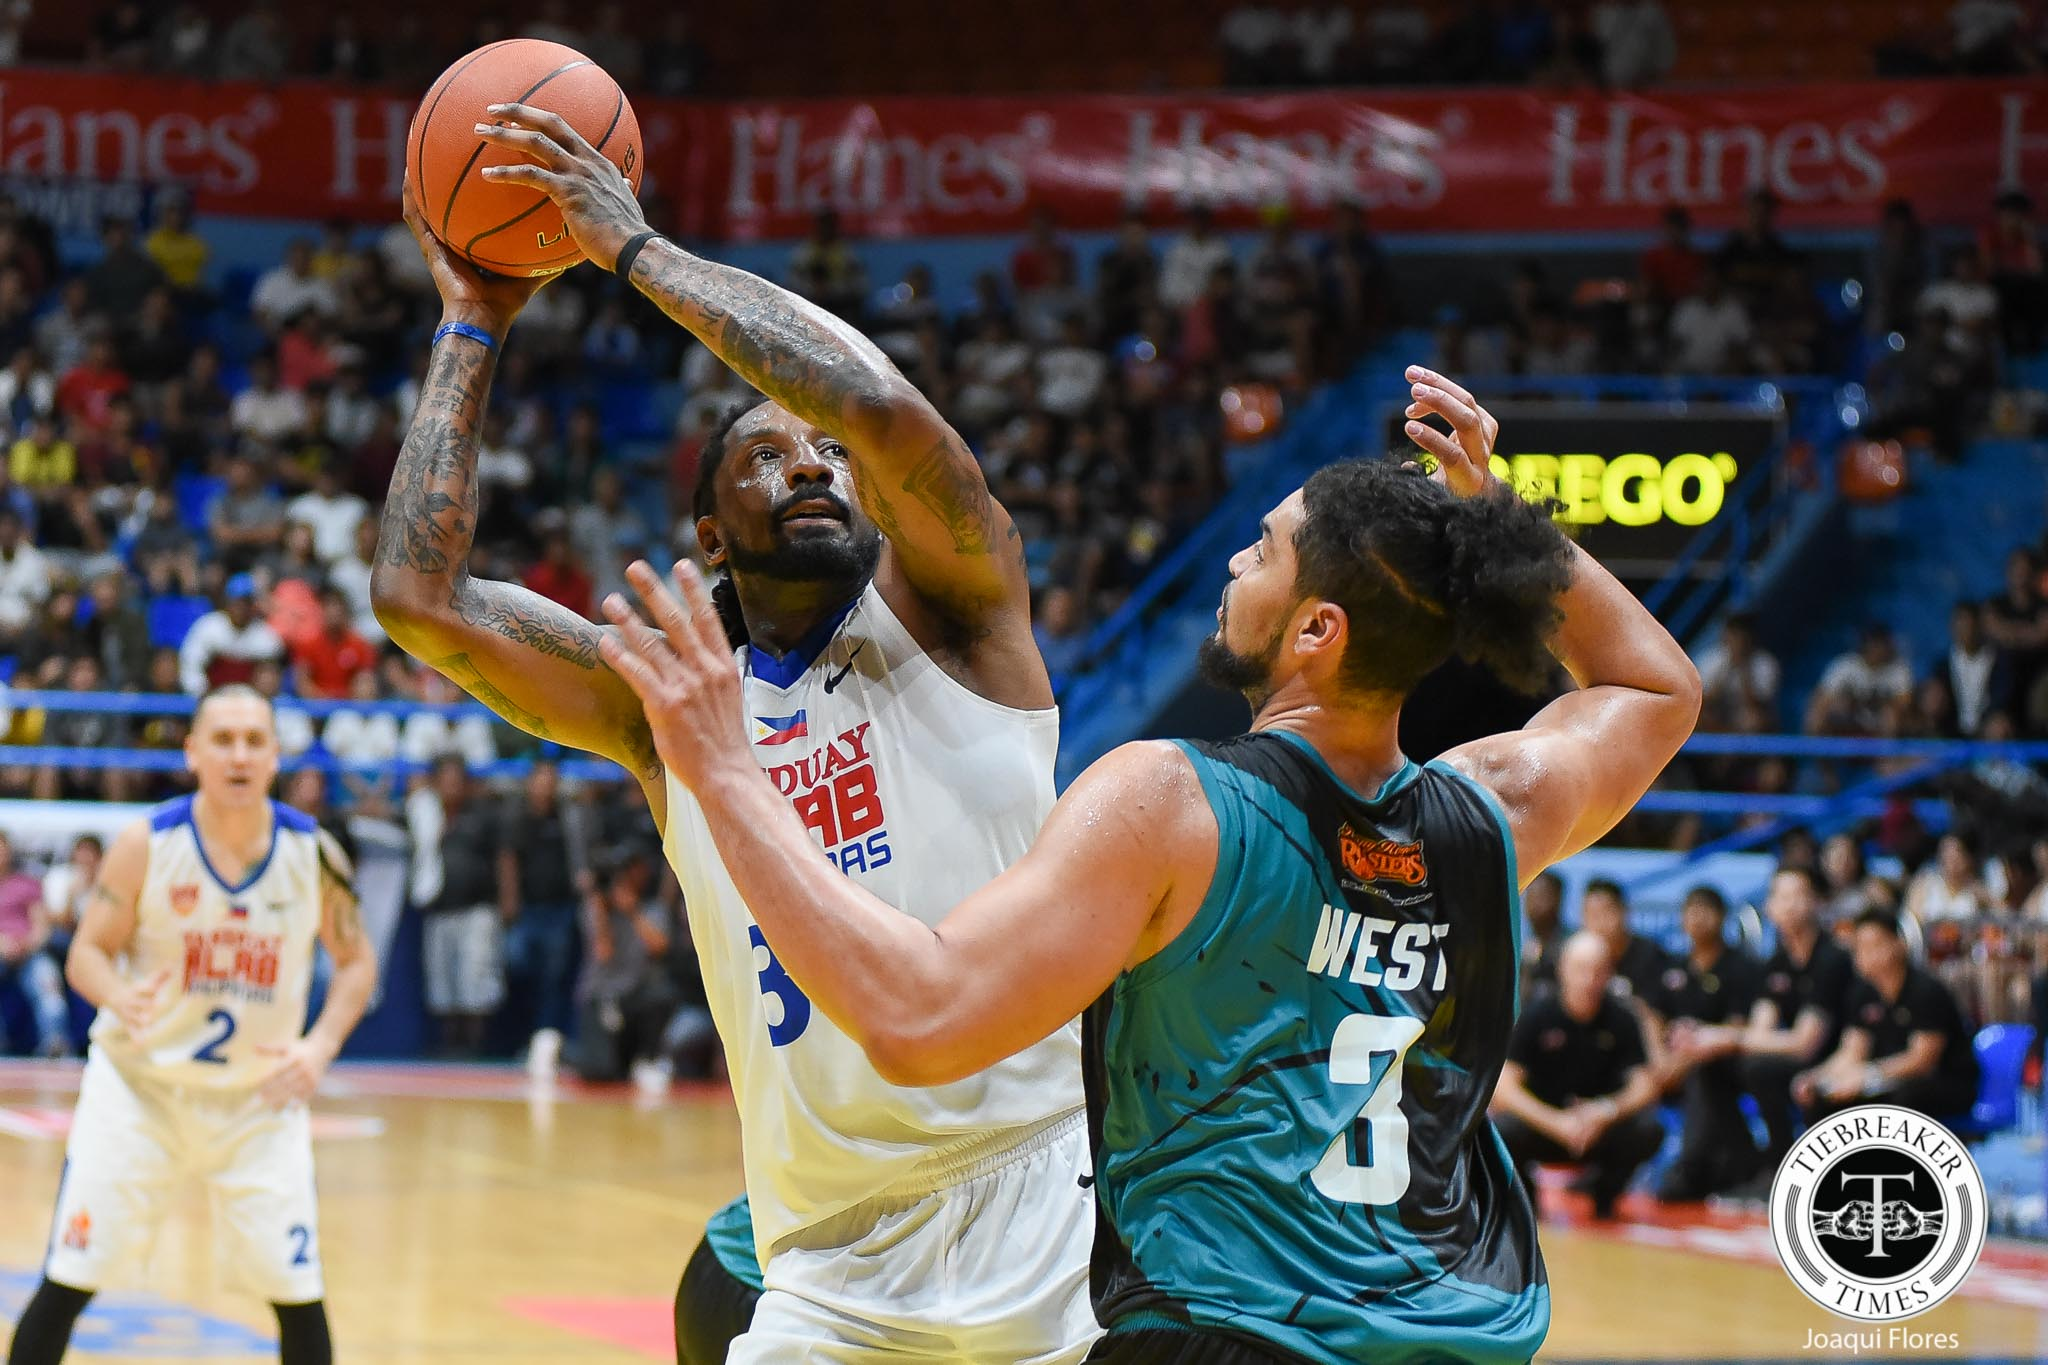 Philippine Sports News - Tiebreaker Times Jimmy Alapag looks back on history with Justin Brownlee, Renaldo Balkman ABL Alab Pilipinas Basketball News  Renaldo Balkman Justin Brownlee Jimmy Alapag 2017-18 ABL Season